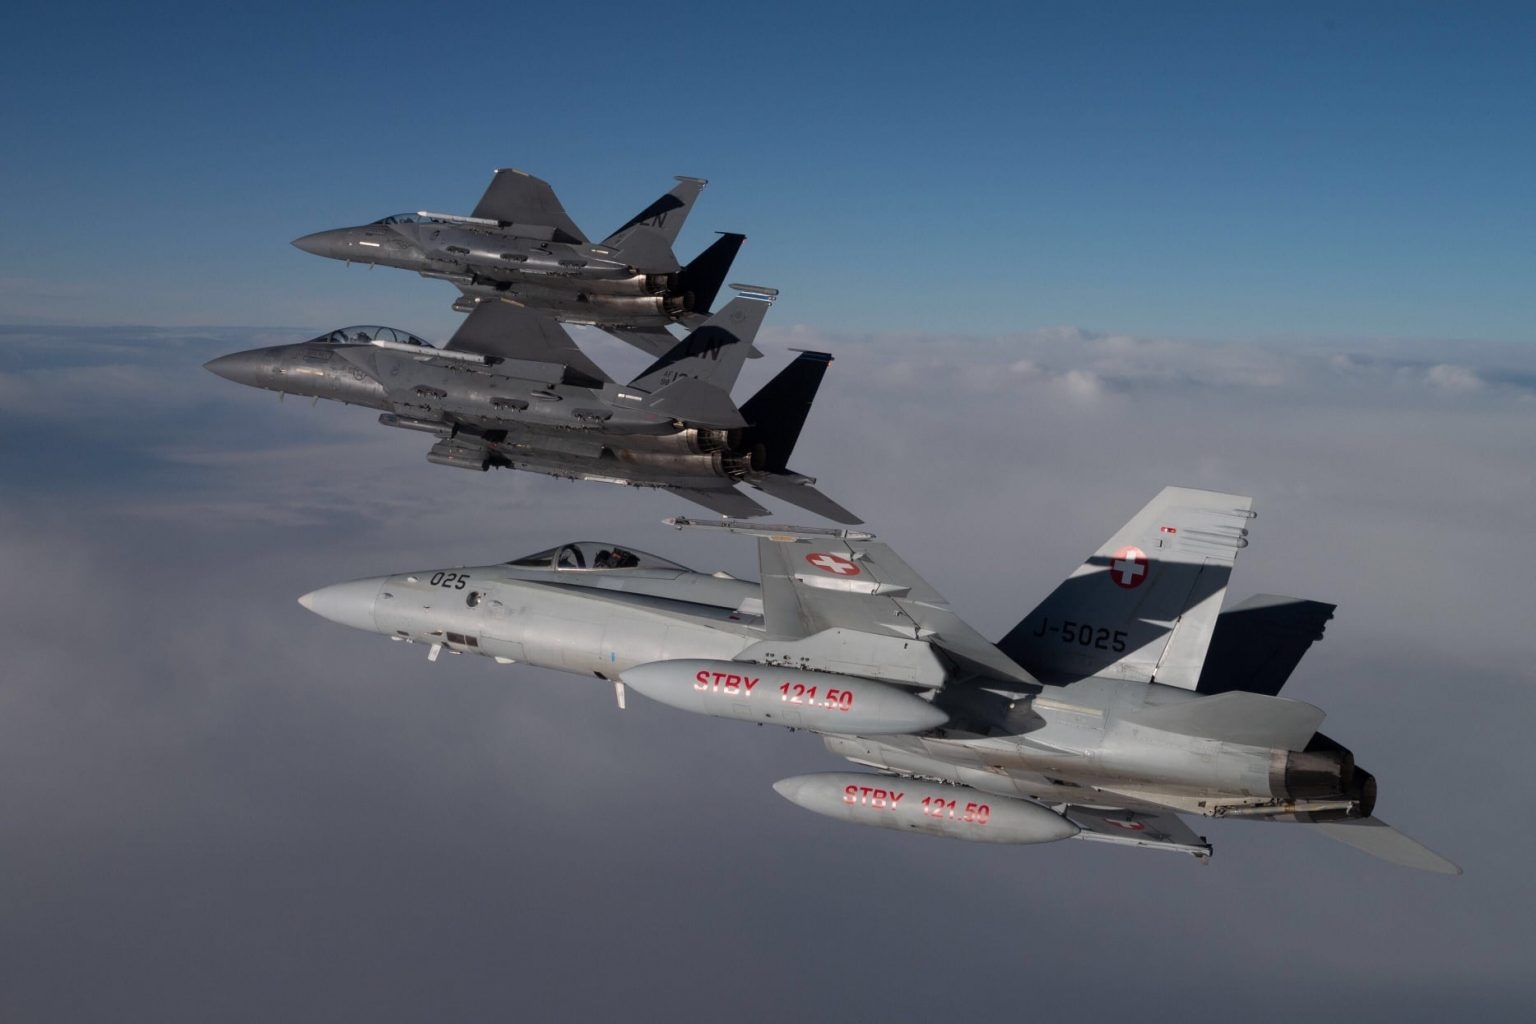 YORKNITE 2020: Schweizer F/A-18 und F-15E der US Air Force üben über der Nordsee © 48th Fighter Wing US Air Force